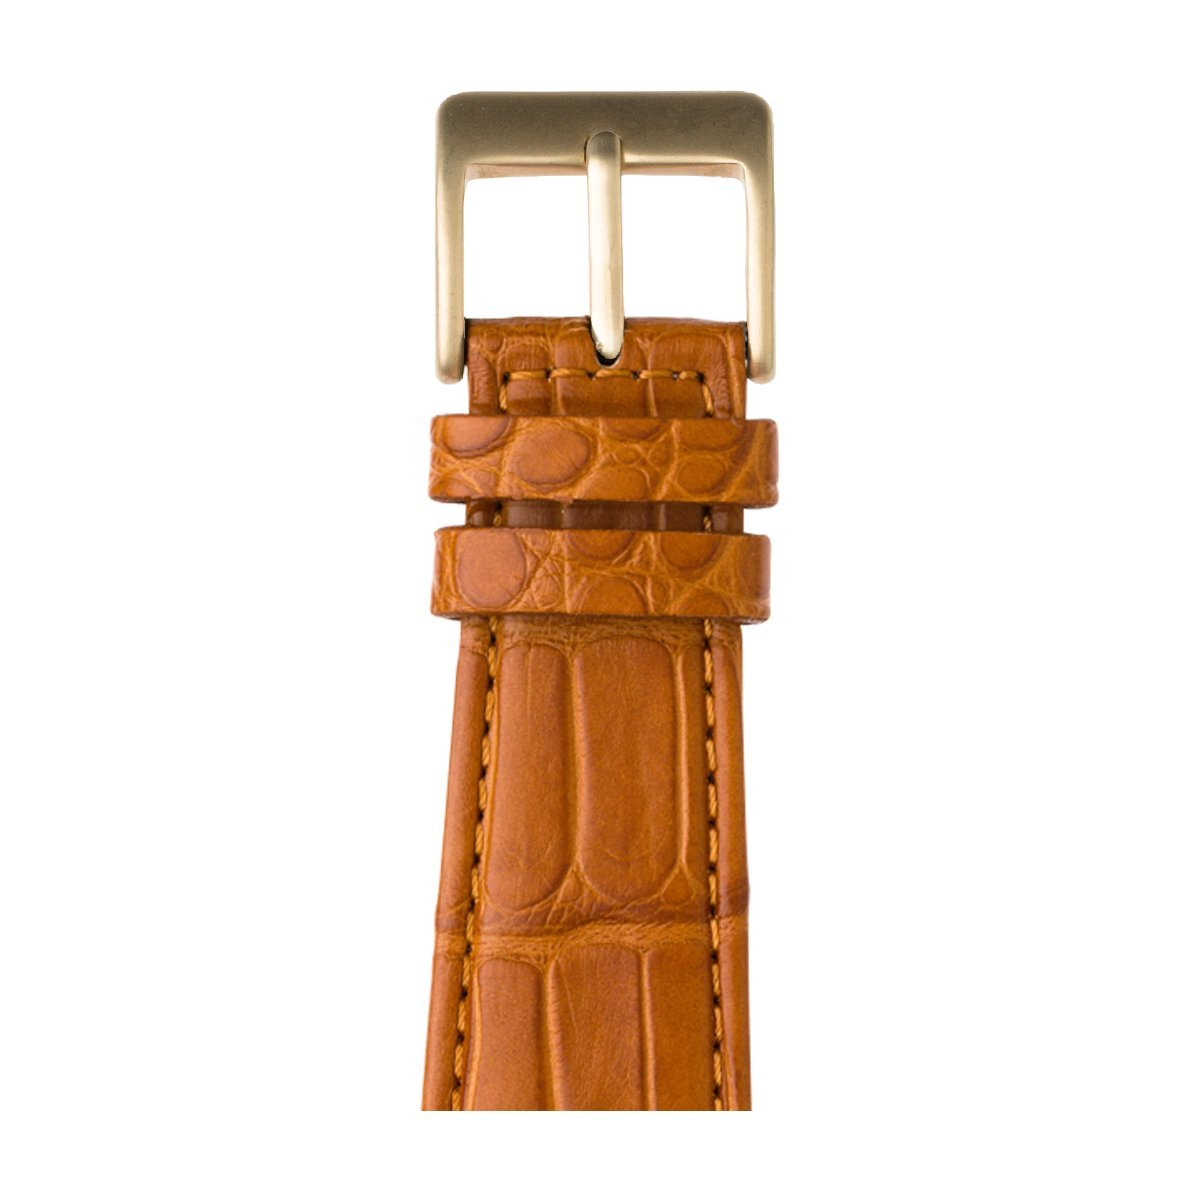 Roobaya | Premium Alligator Leather Apple Watch Band in Cognac | Includes Adapters matching the Color of the Apple Watch, Case Color:Gold Aluminum, Size:42 mm